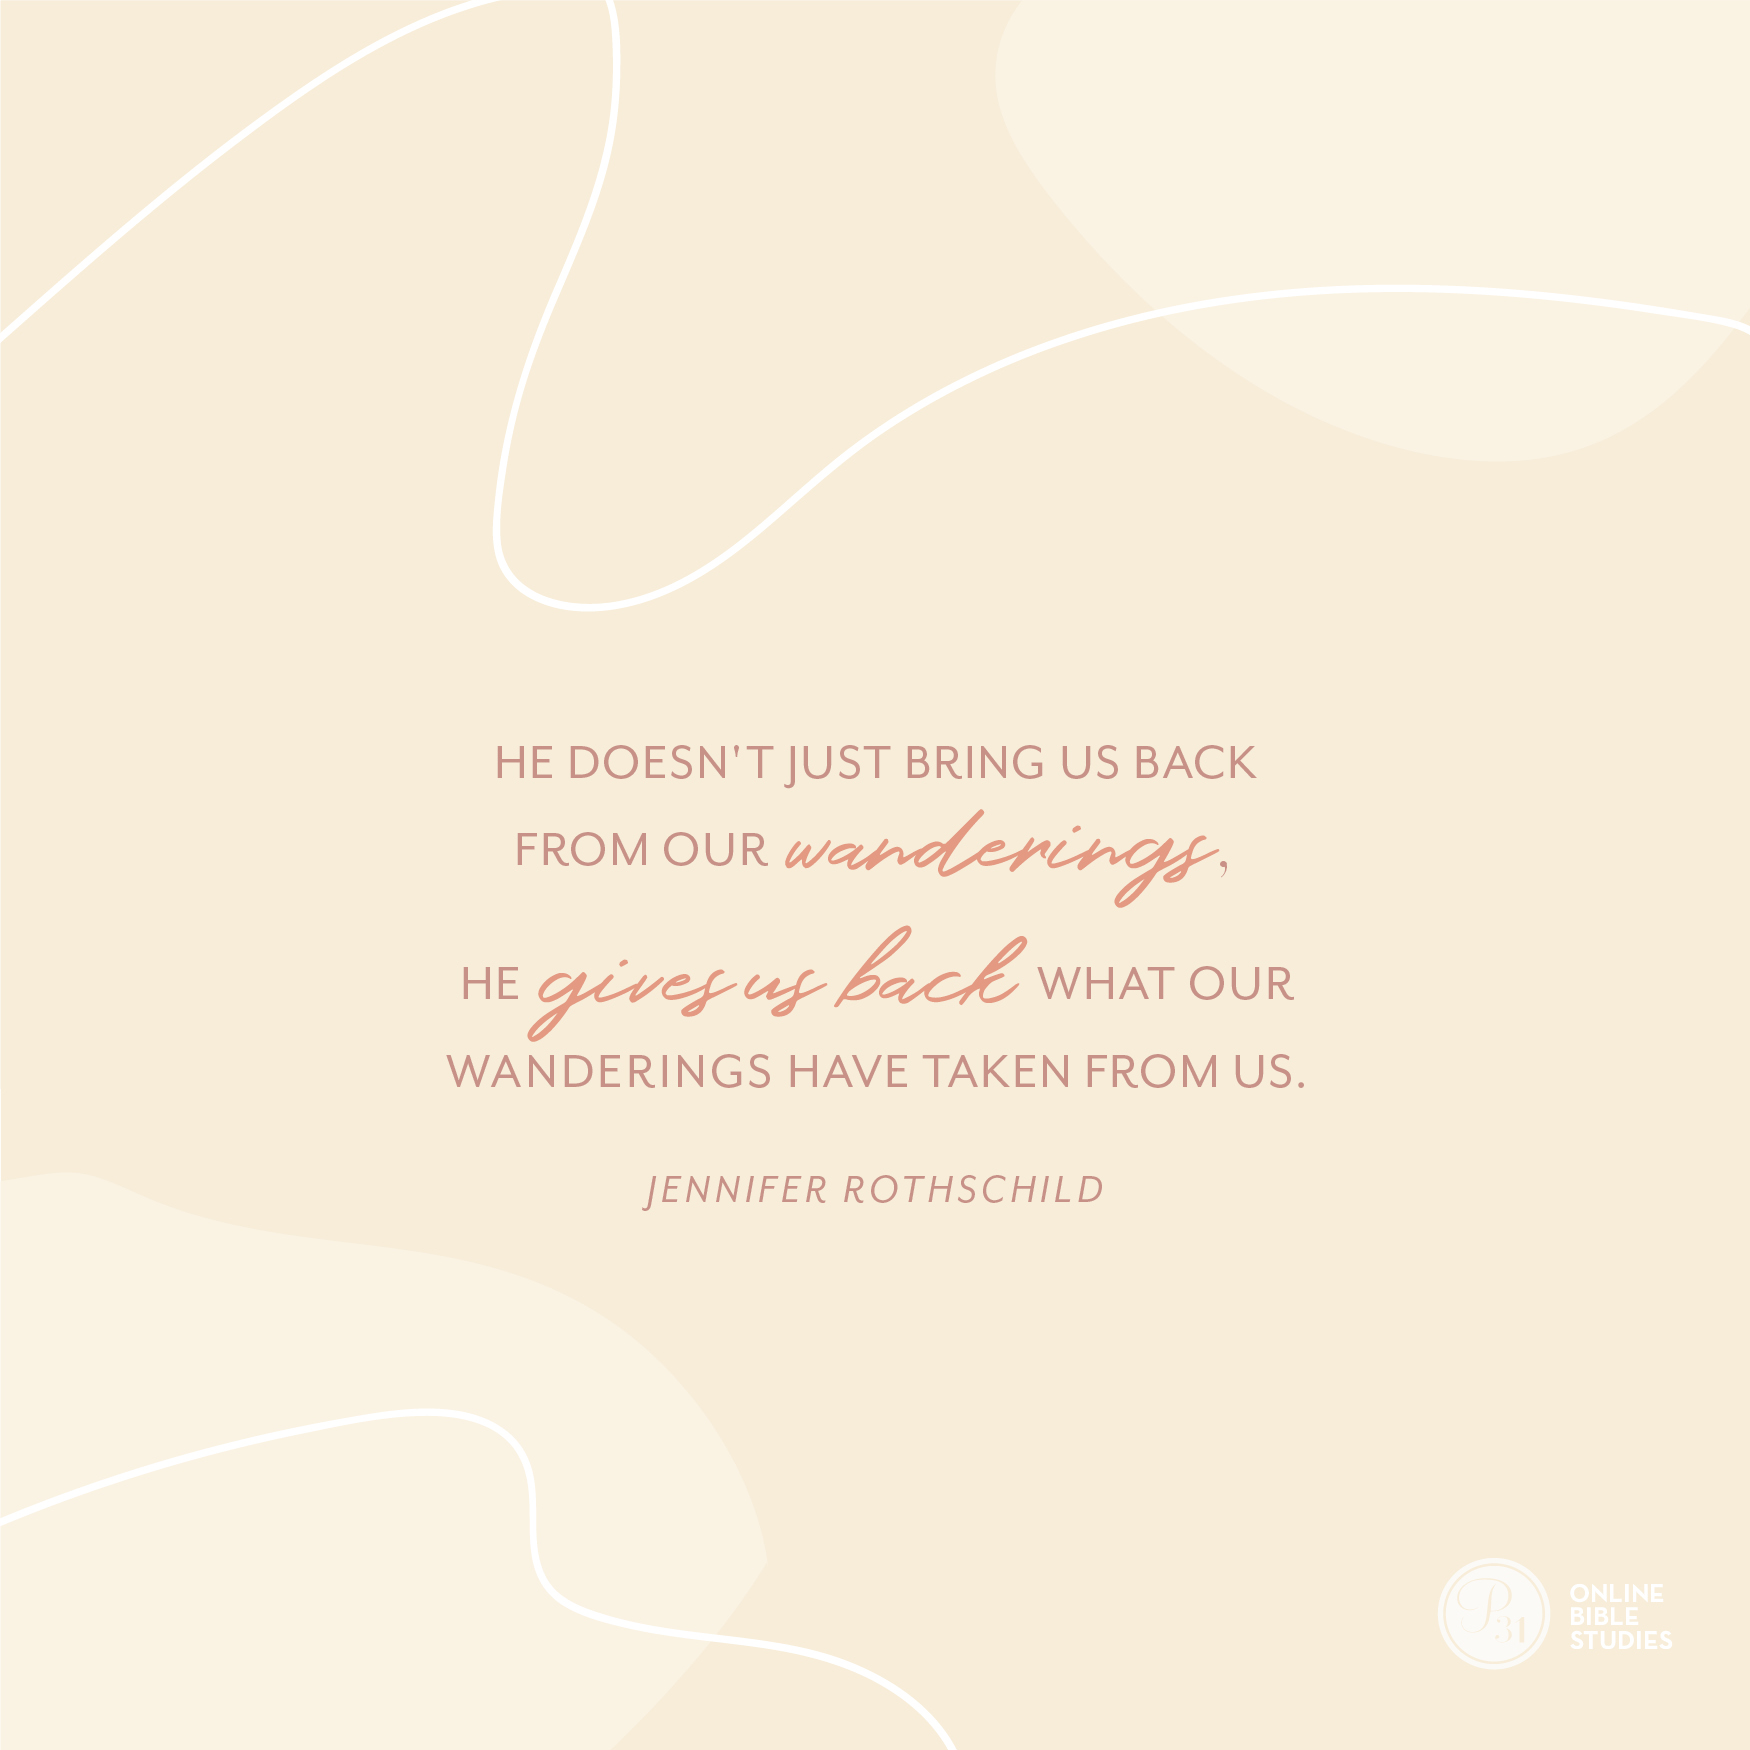 """He doesn't just bring us back from our wanderings, He gives us back what our wanderings have taken from us."" - Jennifer Rothschild  #Psalm23Study 